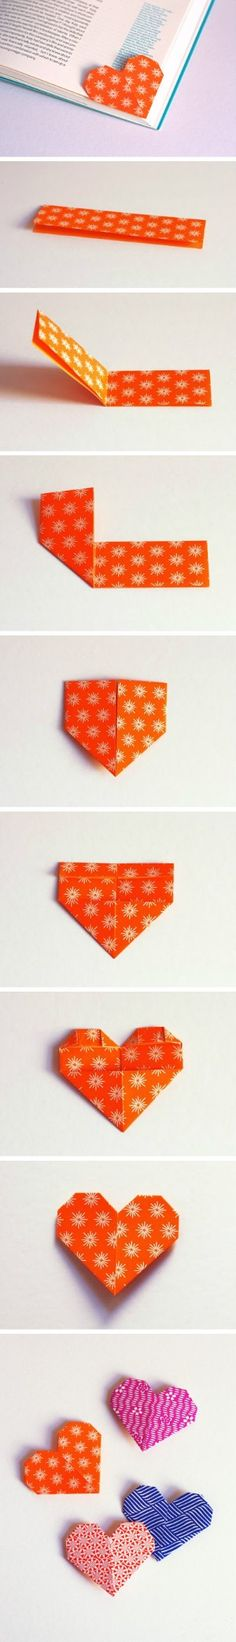 Origami Heart Bookmark